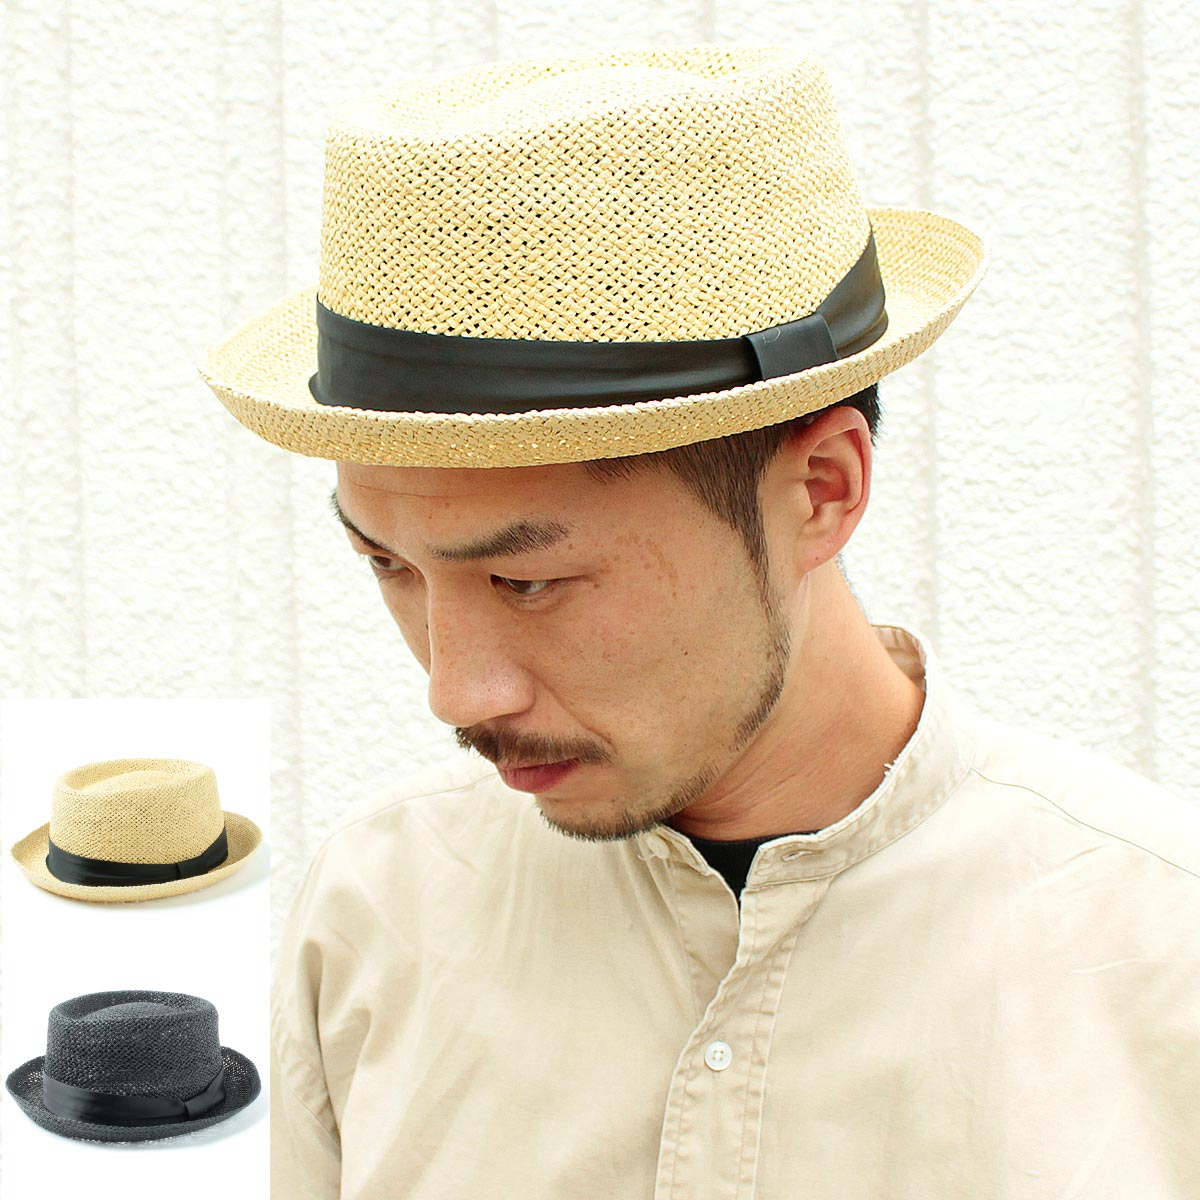 0af7f304a Natural materials natural straw pork pie Hat! Products - Paper Porkpie Hat  walking, walks, unisex-unisex men's hats, straw paper hats テラピンチ